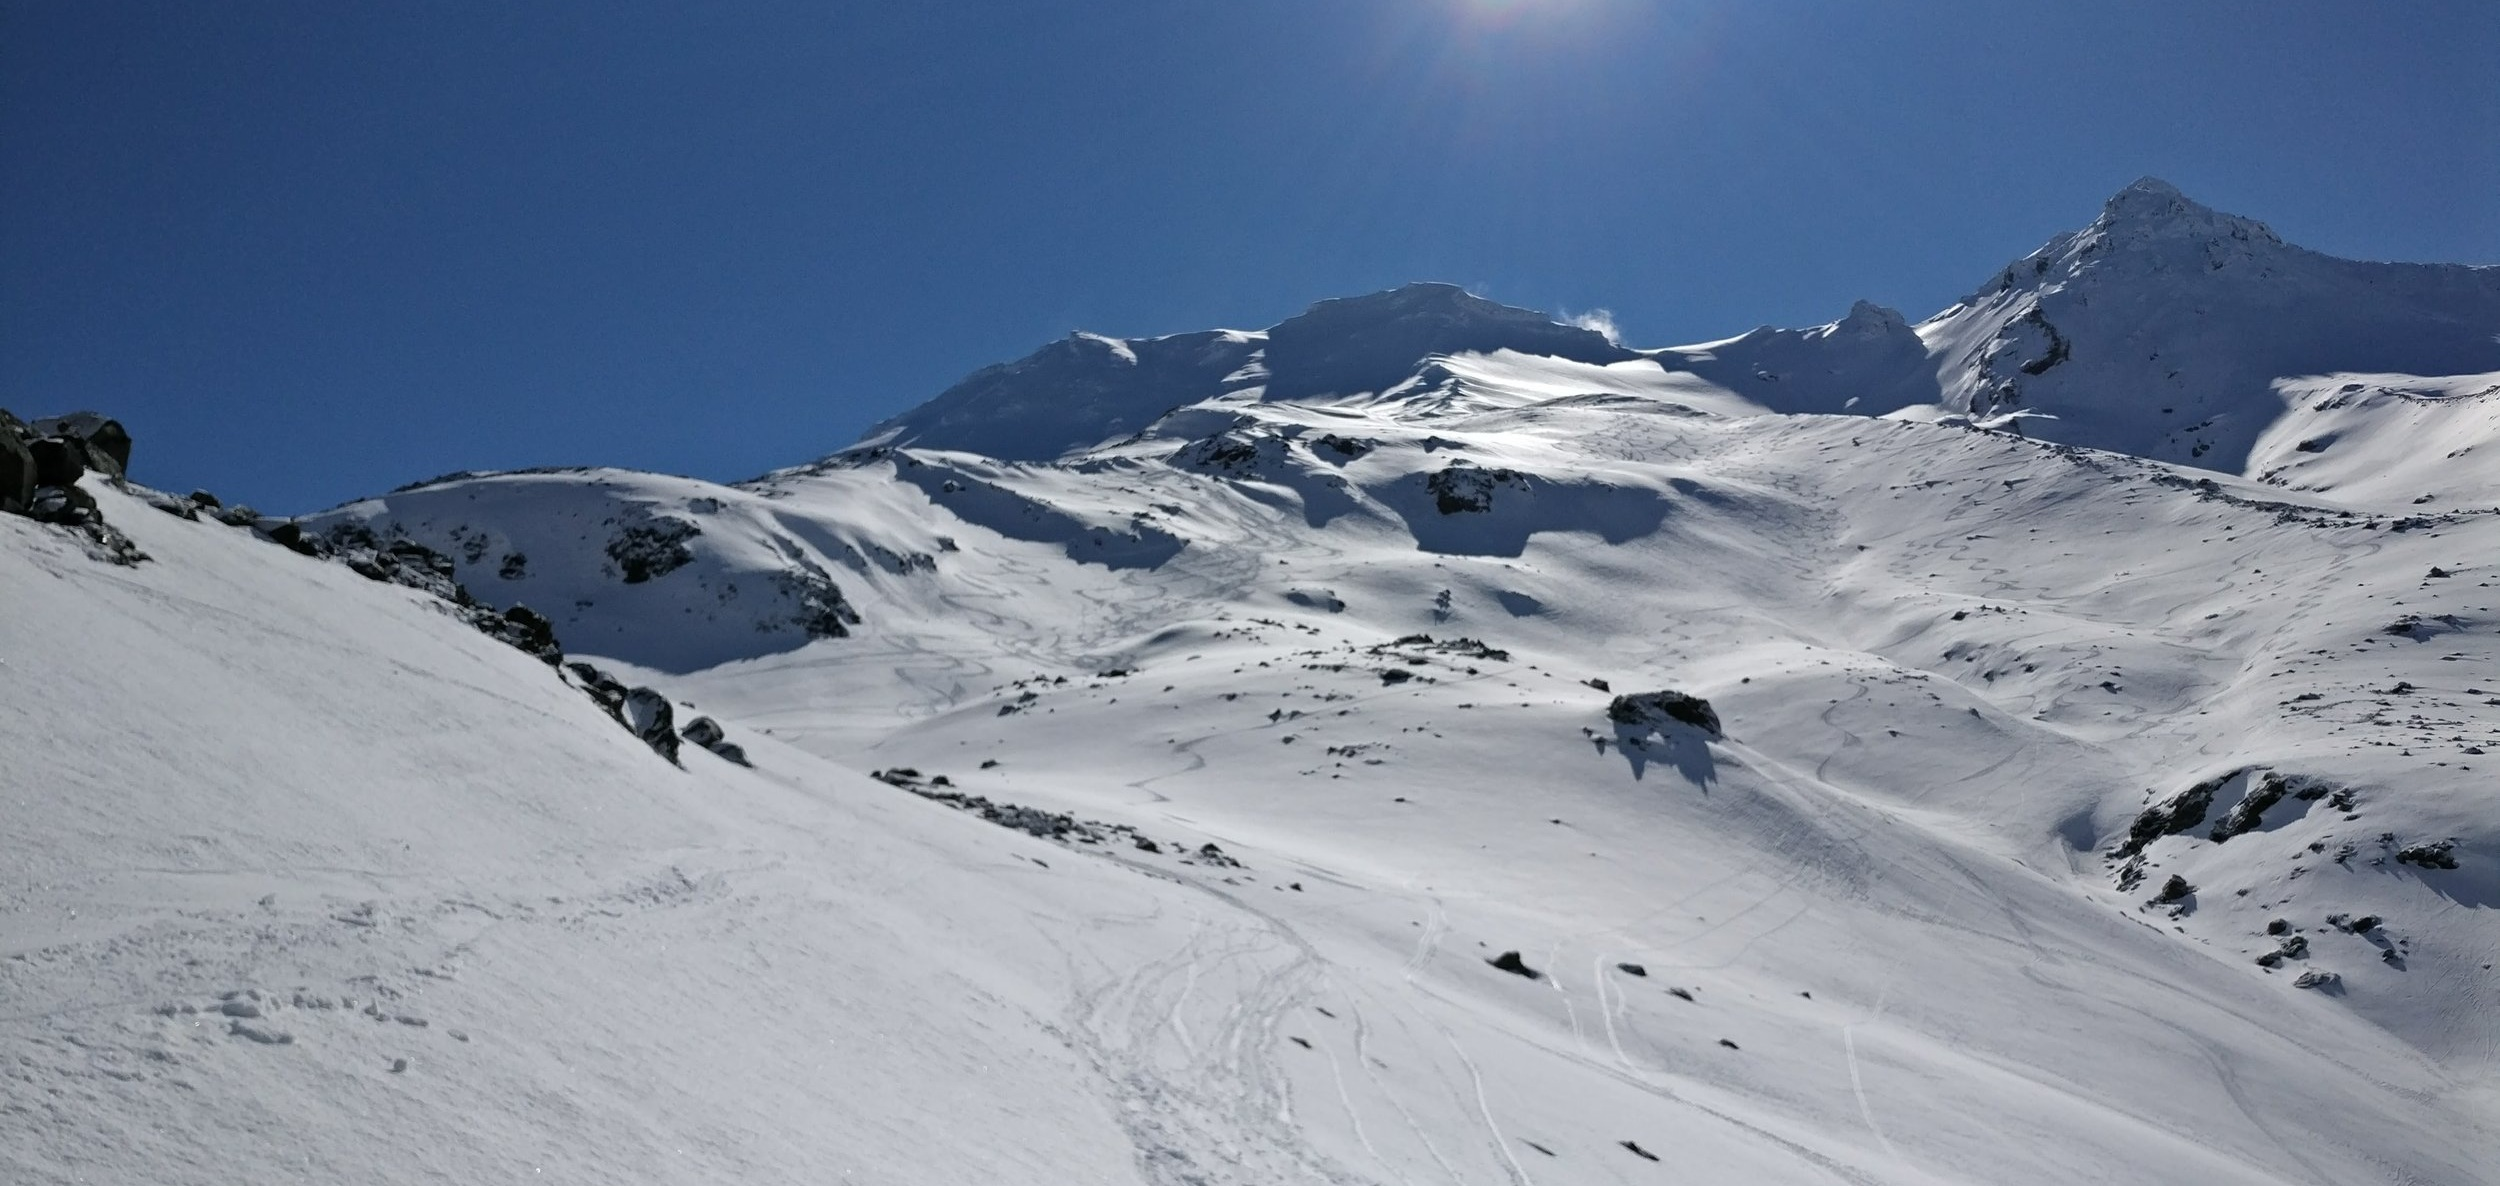 Some of the skiable terrain to the east of Turoa. Makes for some great freeriding!